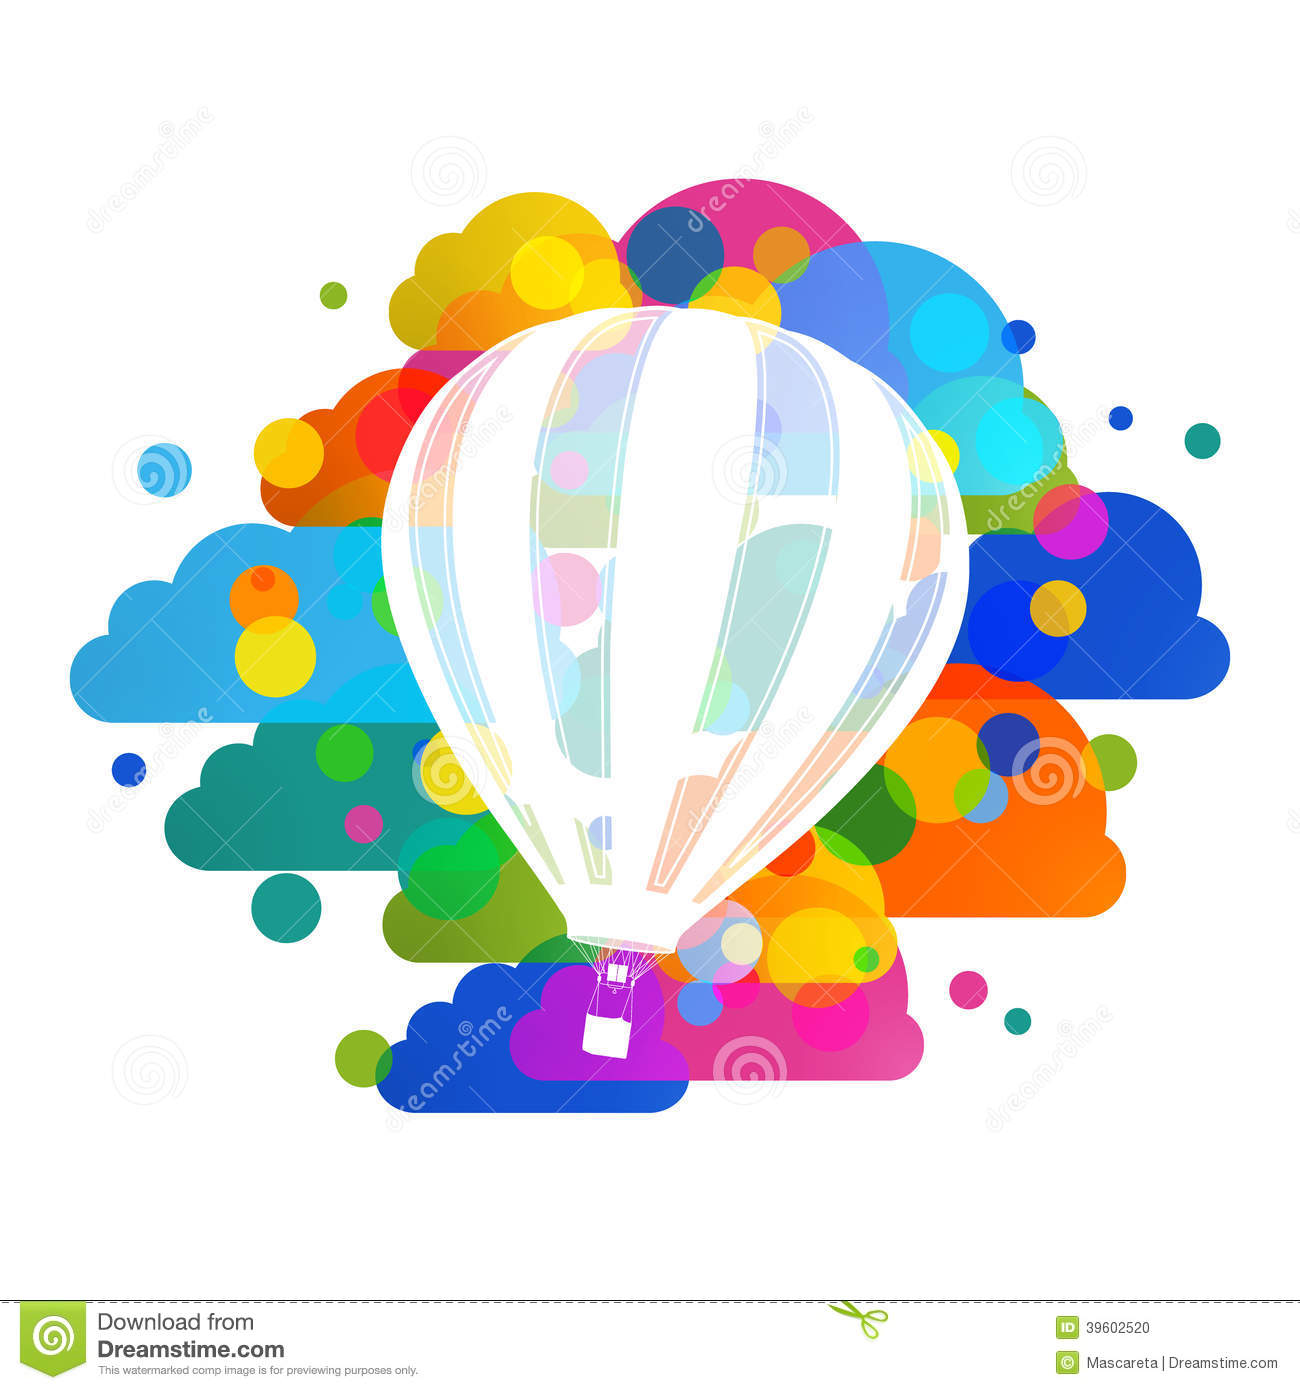 Hot air balloon silhouette, colorful clouds abstract vector background